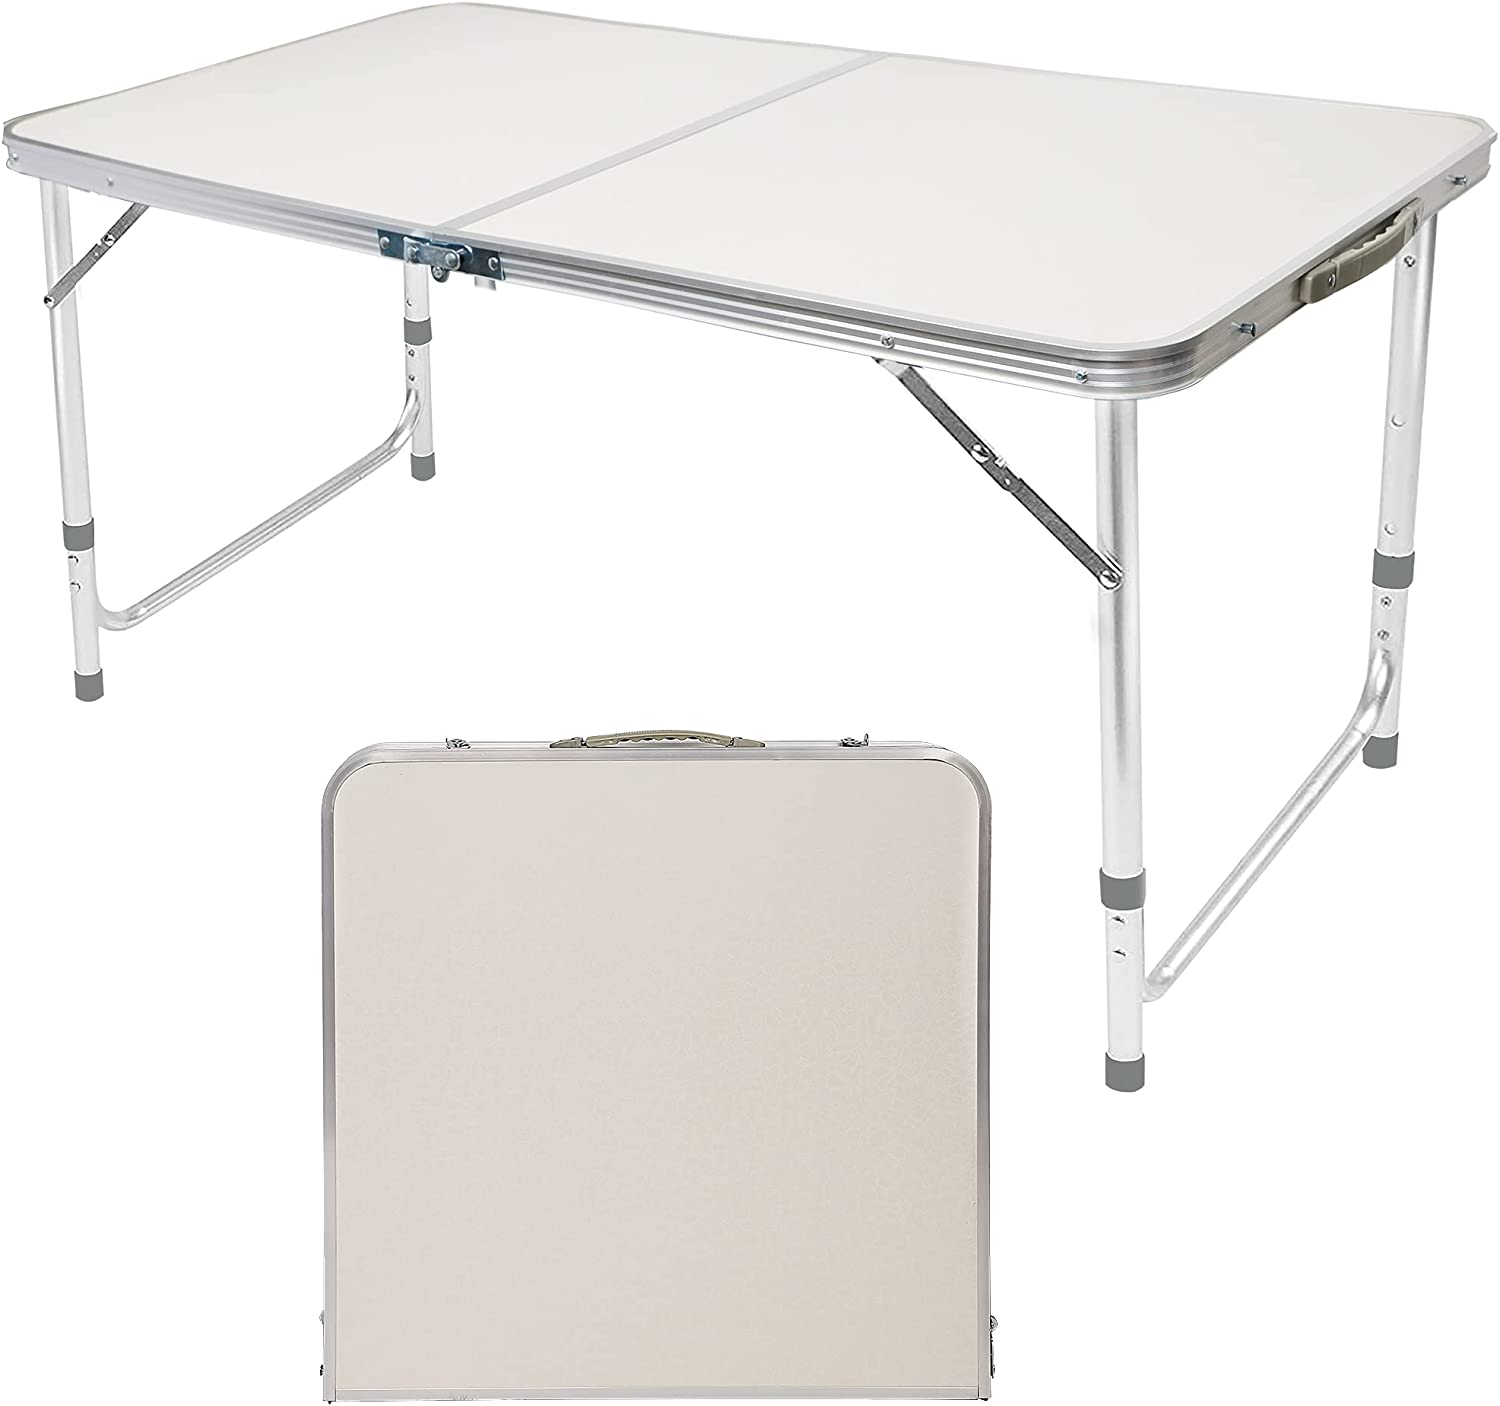 FORUP Folding Camping Table, 4 Ft Aluminum Folding Table with Handle, Adjustable Portable Camp Table for Picnic, BBQ, Party, Beach, White